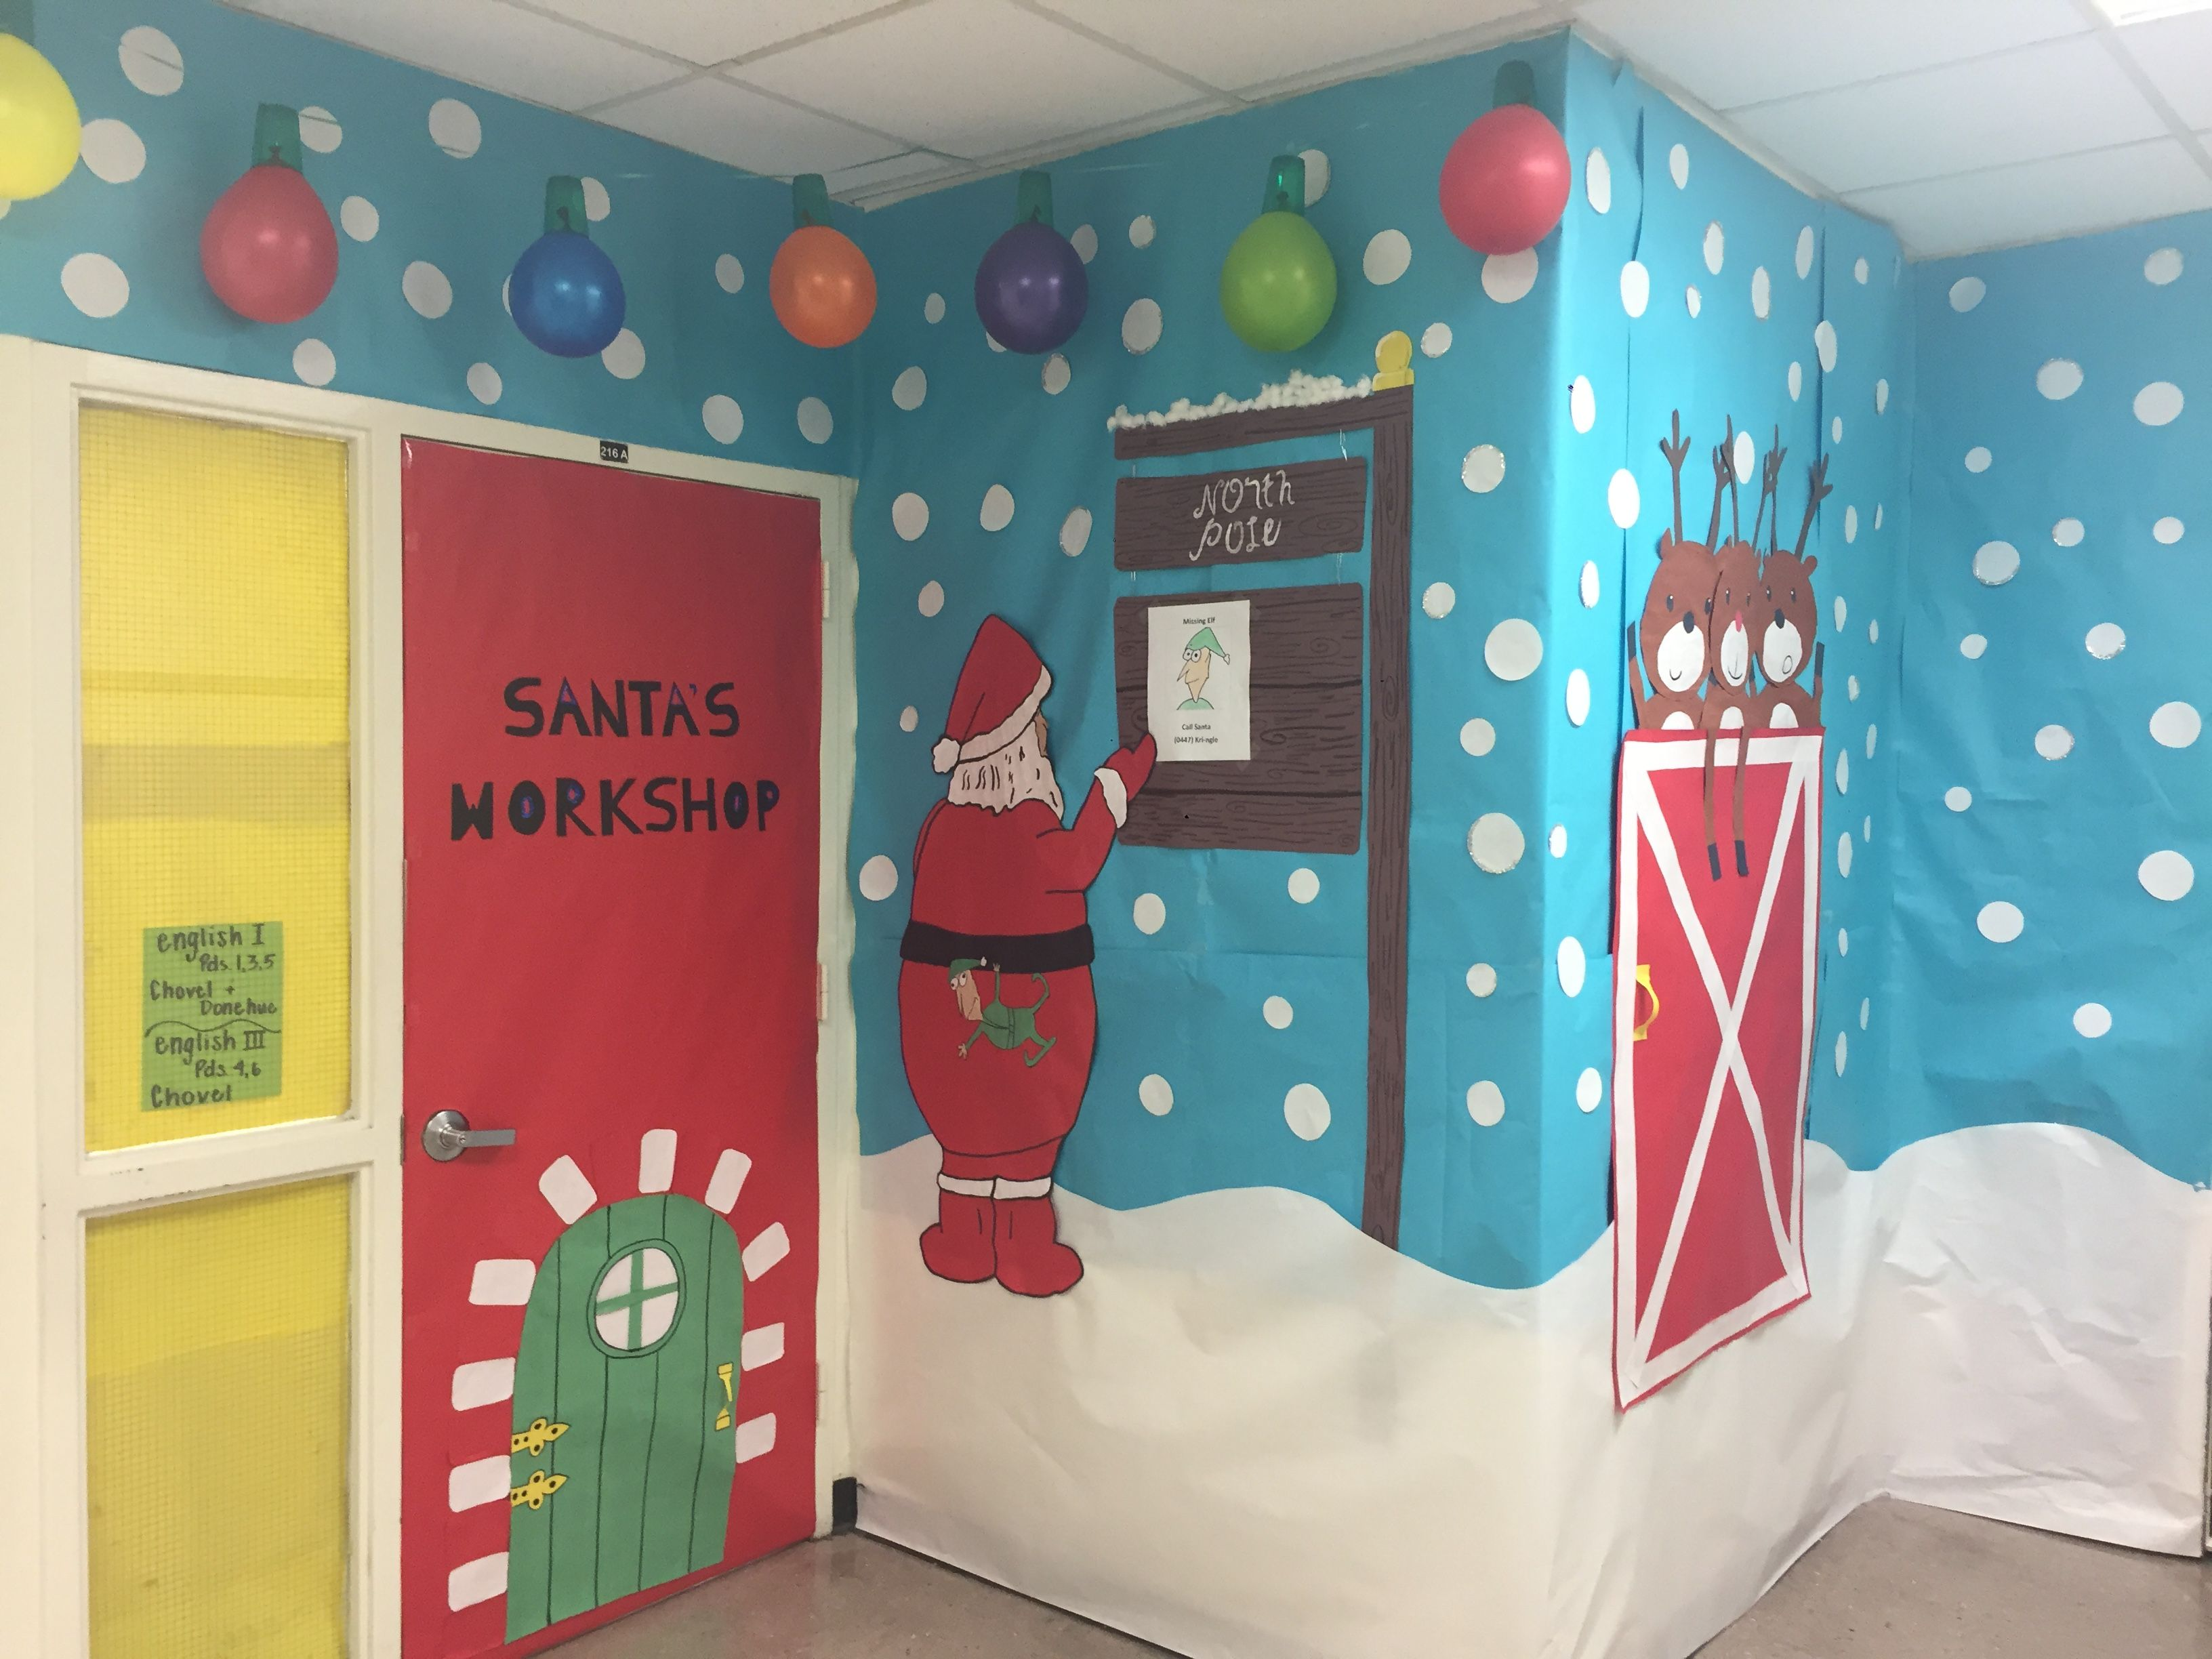 Holiday door decorating contest. Santa's workshop